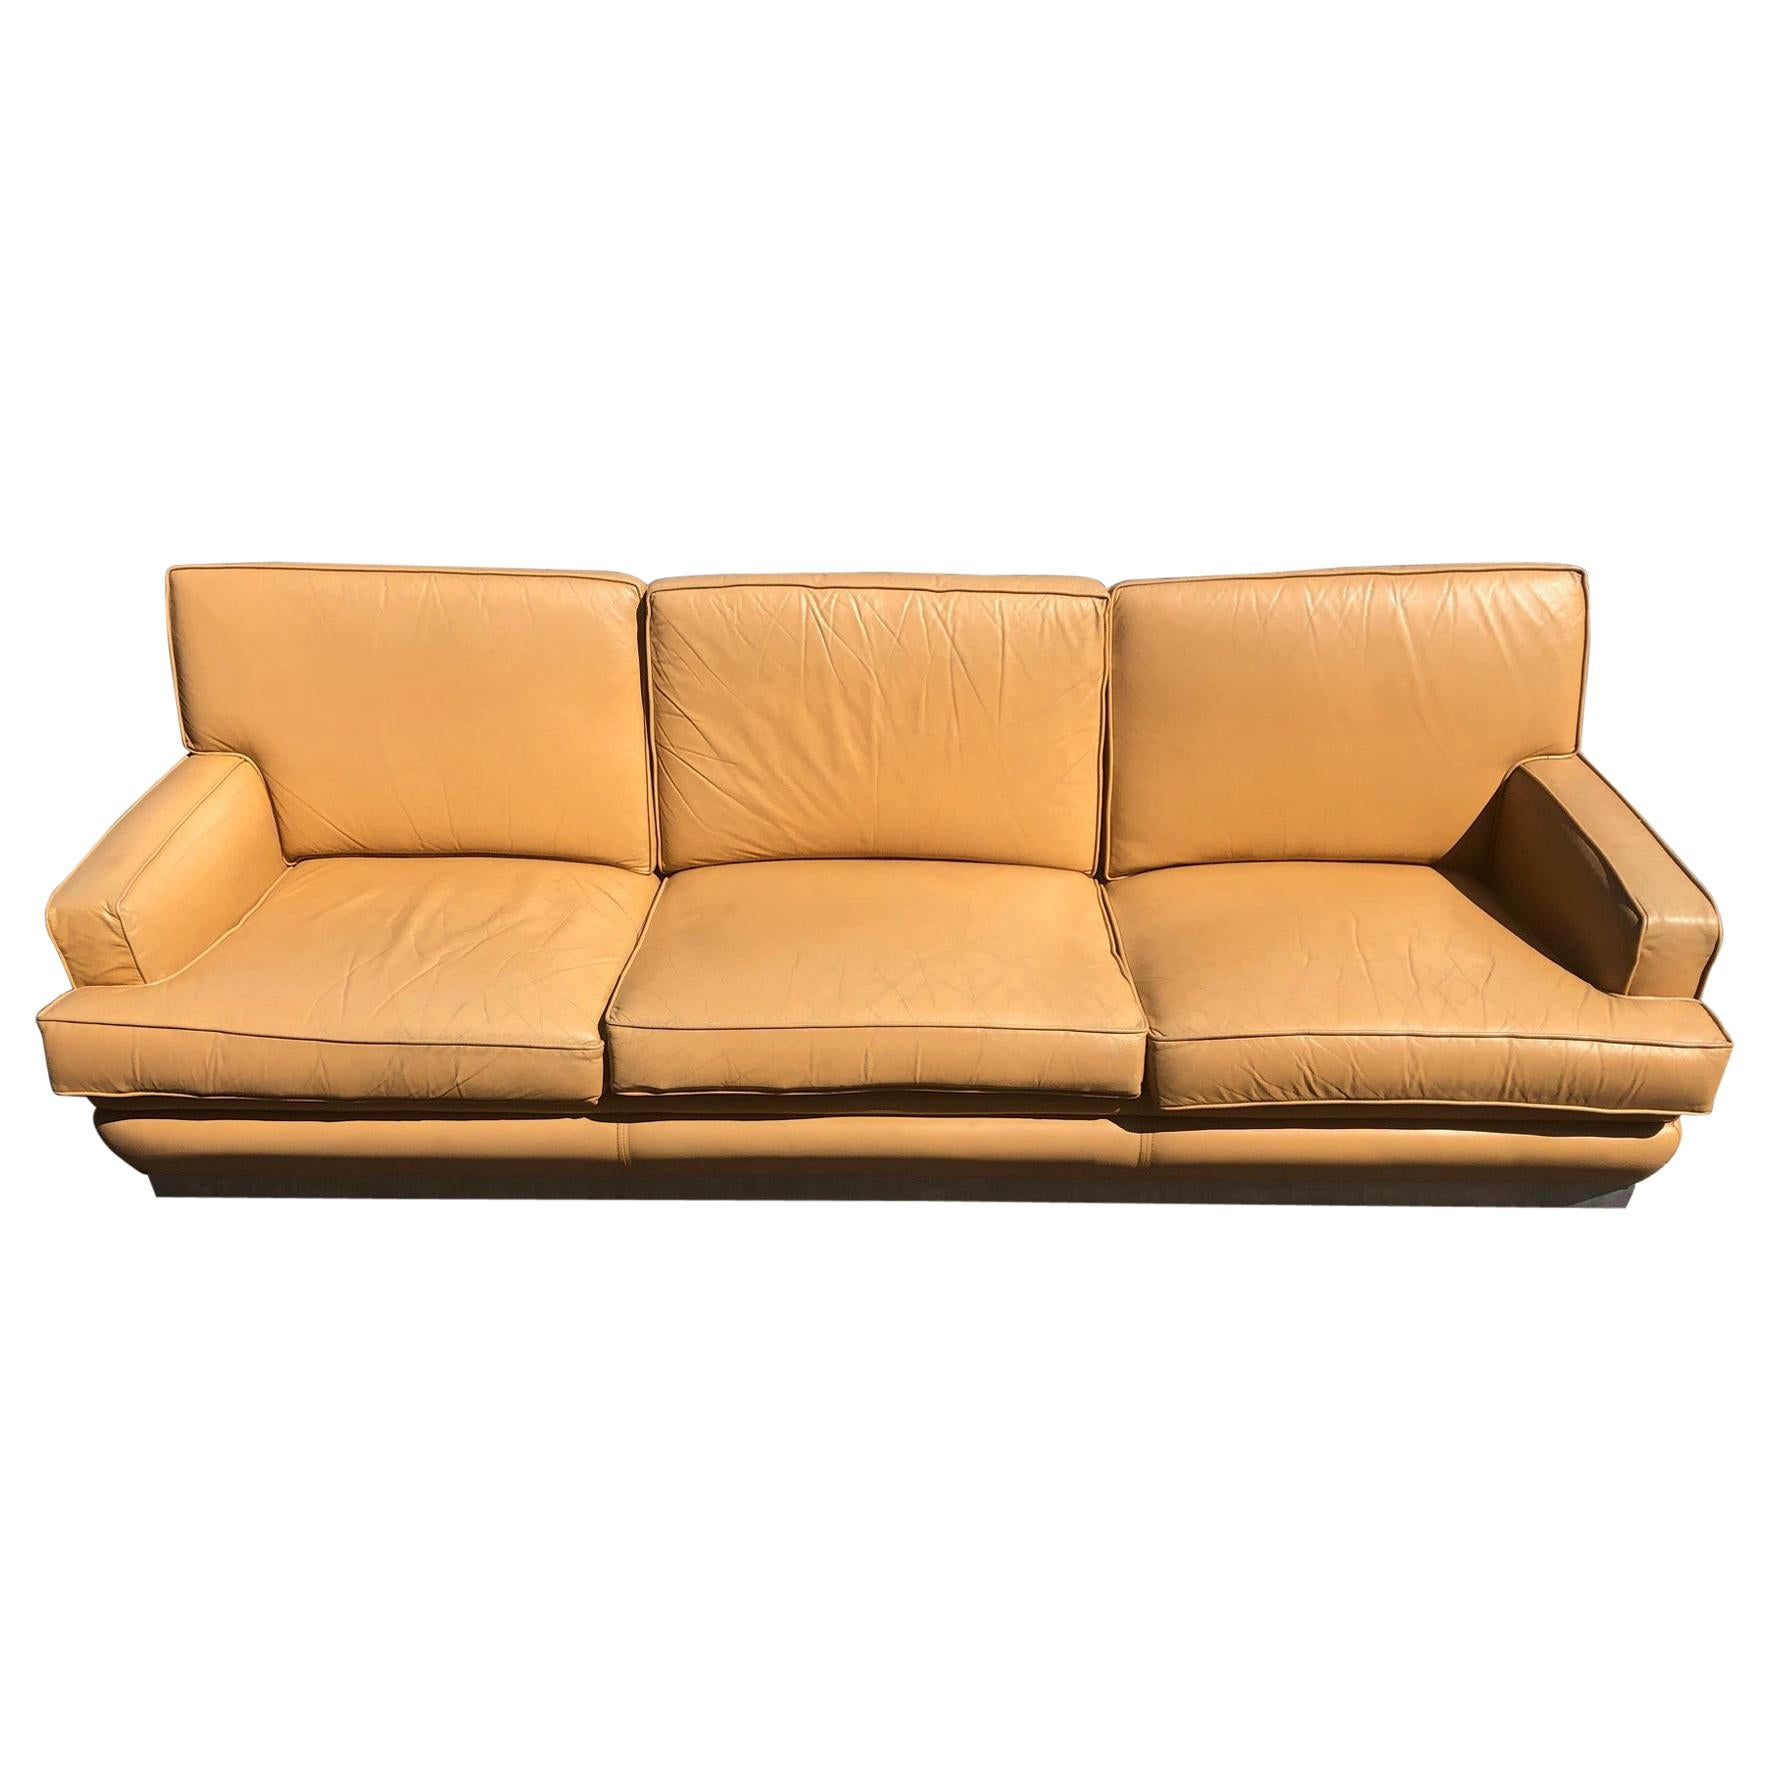 Sofa by Jacques Charpentier, circa 1970s